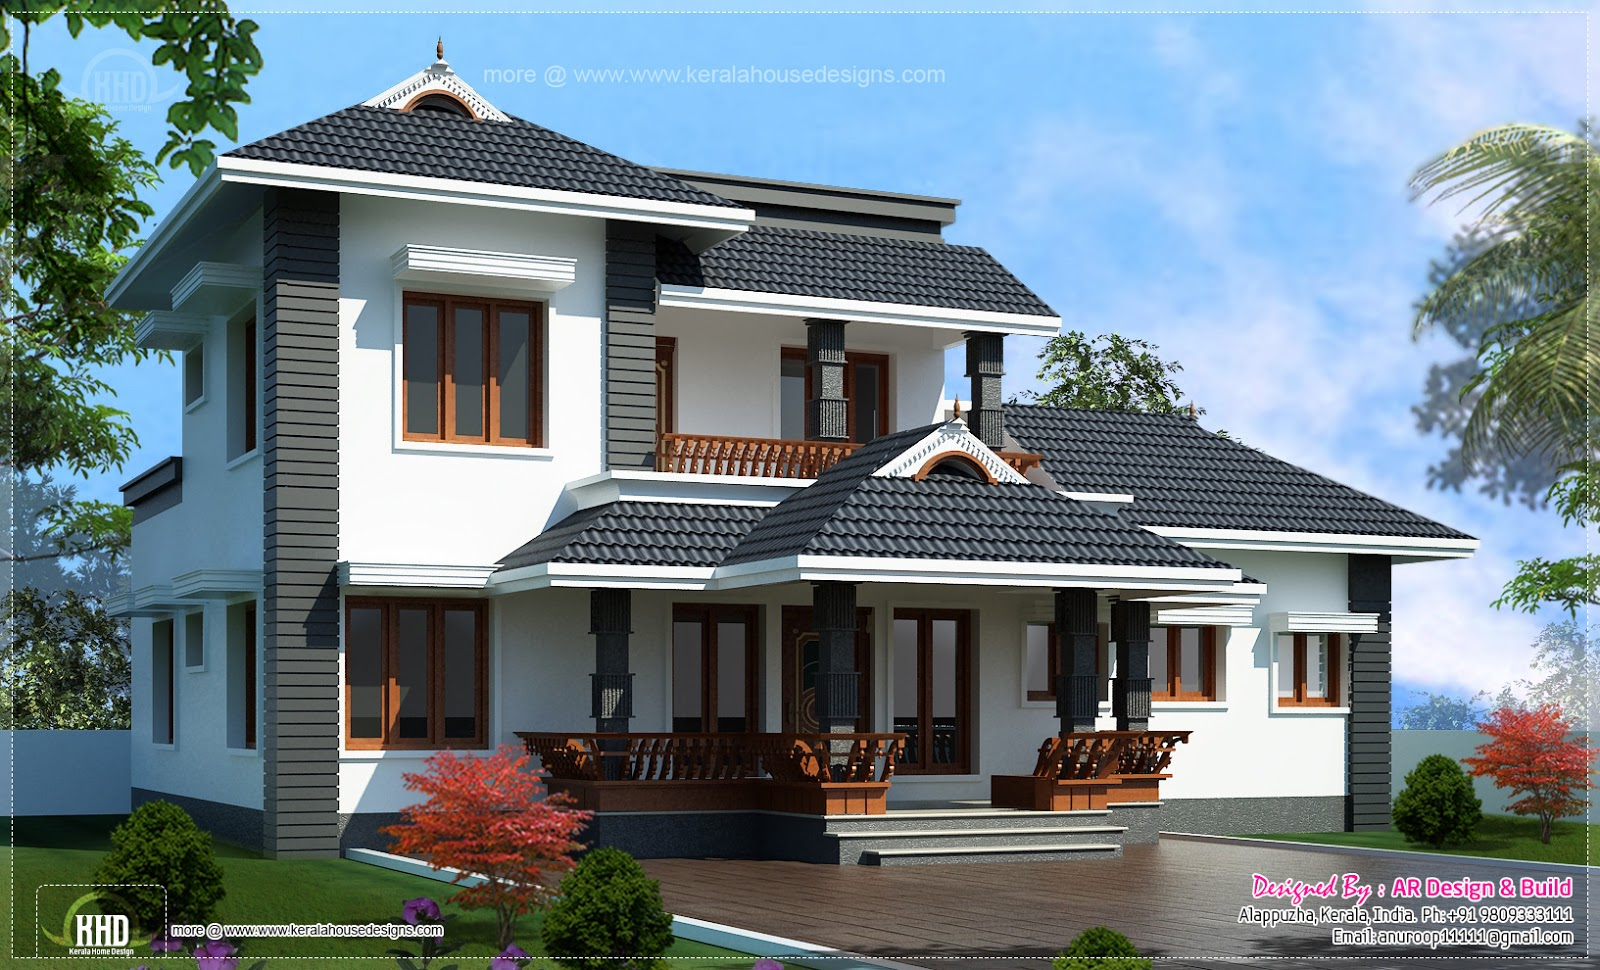 2000 4 bedroom sloping roof residence kerala for Kerala style house plans with cost